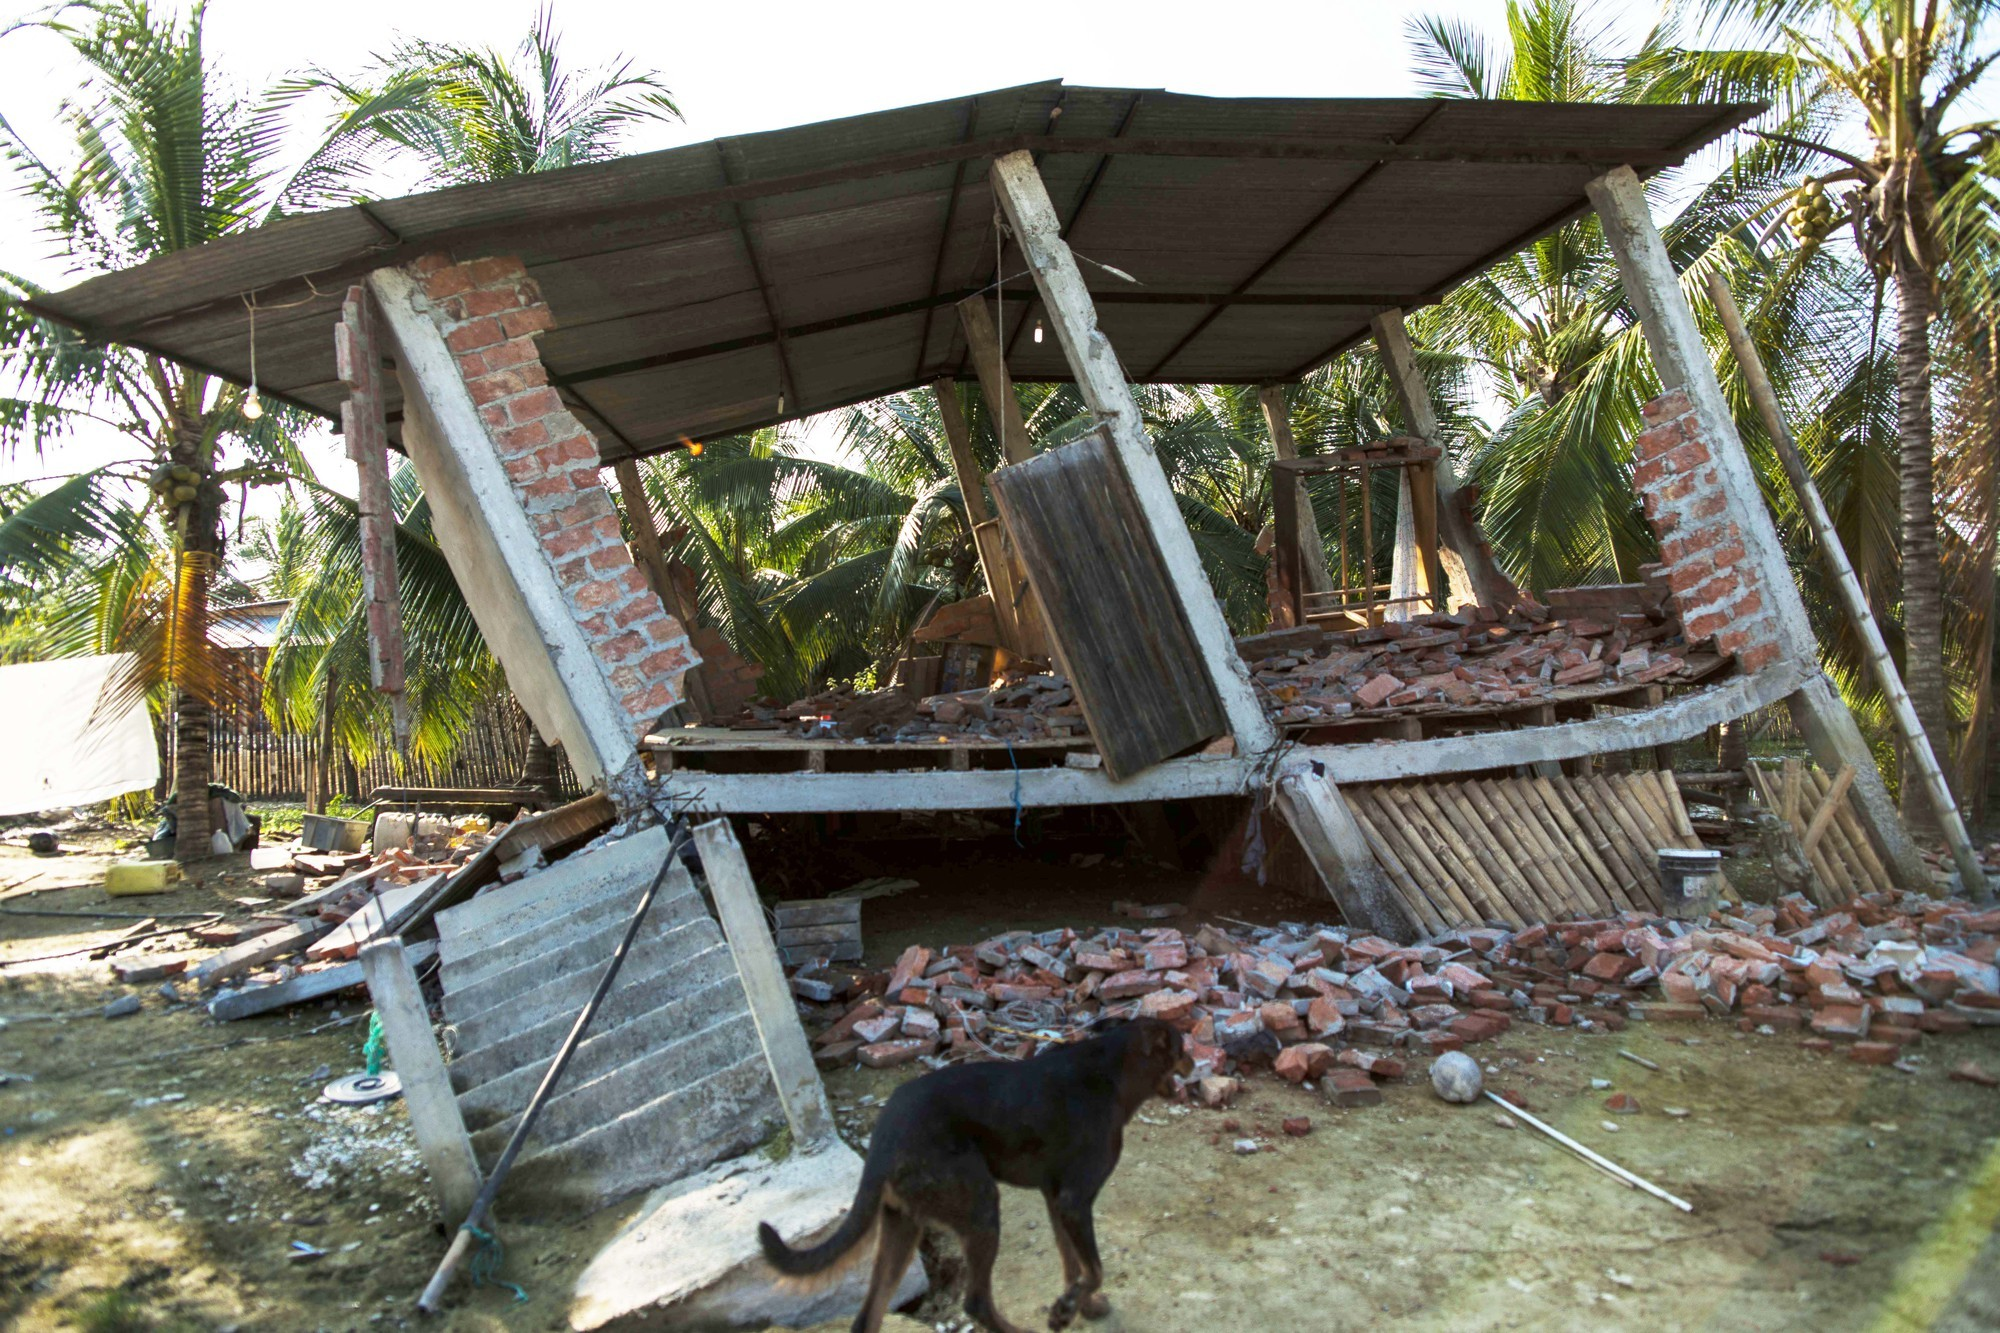 Collapsed house caused by earthquake in Manabi province